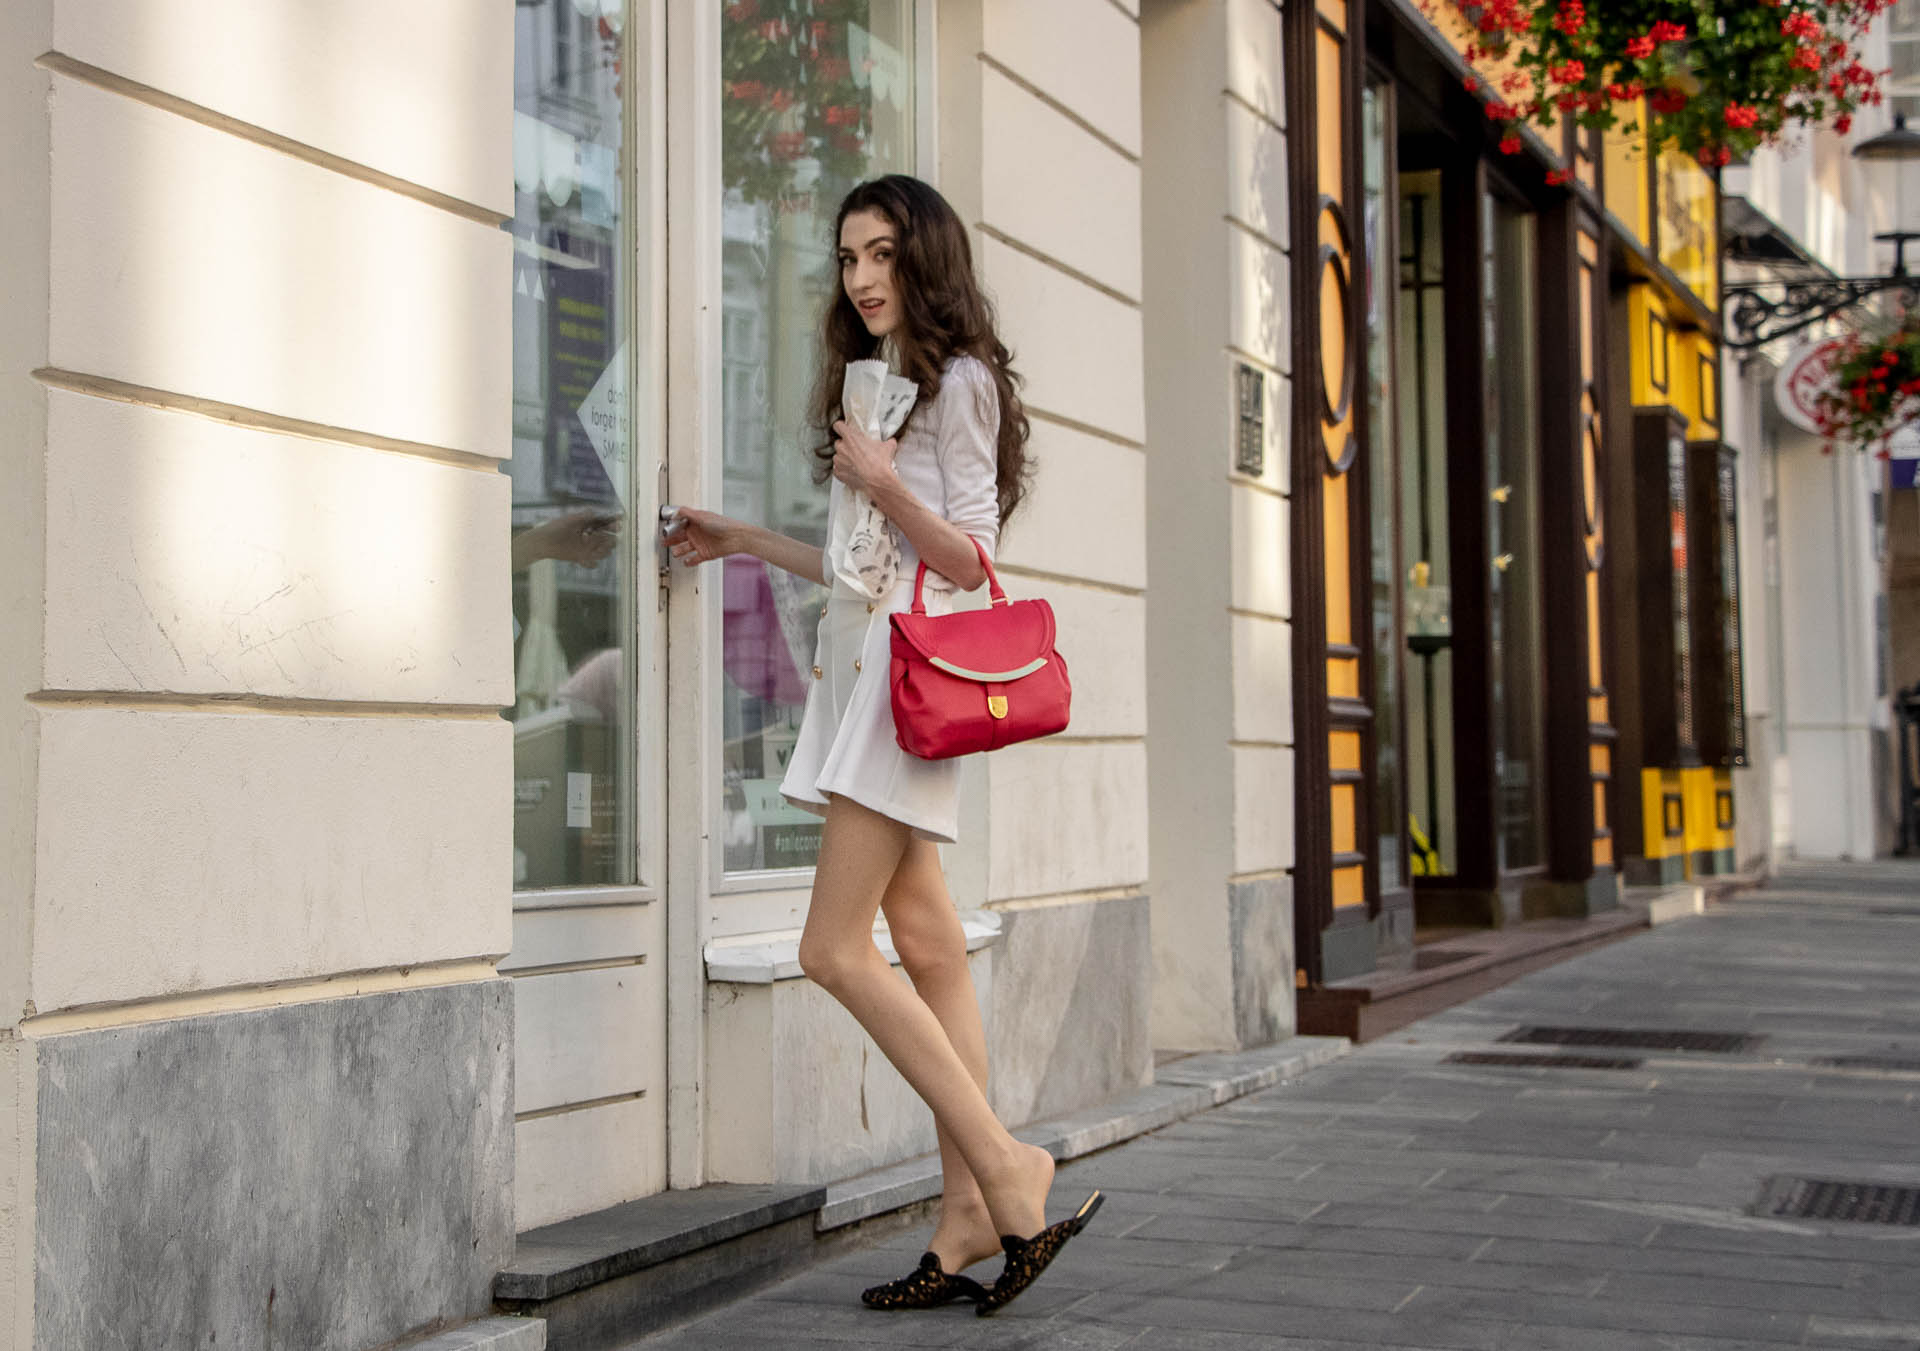 Beautiful Slovenian Fashion Blogger Veronika Lipar of Brunette from Wall wearing all in white outfit, a white sweater, white tailored shorts, black flat slipper mules, pink top handle bag, a paper bag on the street in Ljubljana when it's hot opening the doors